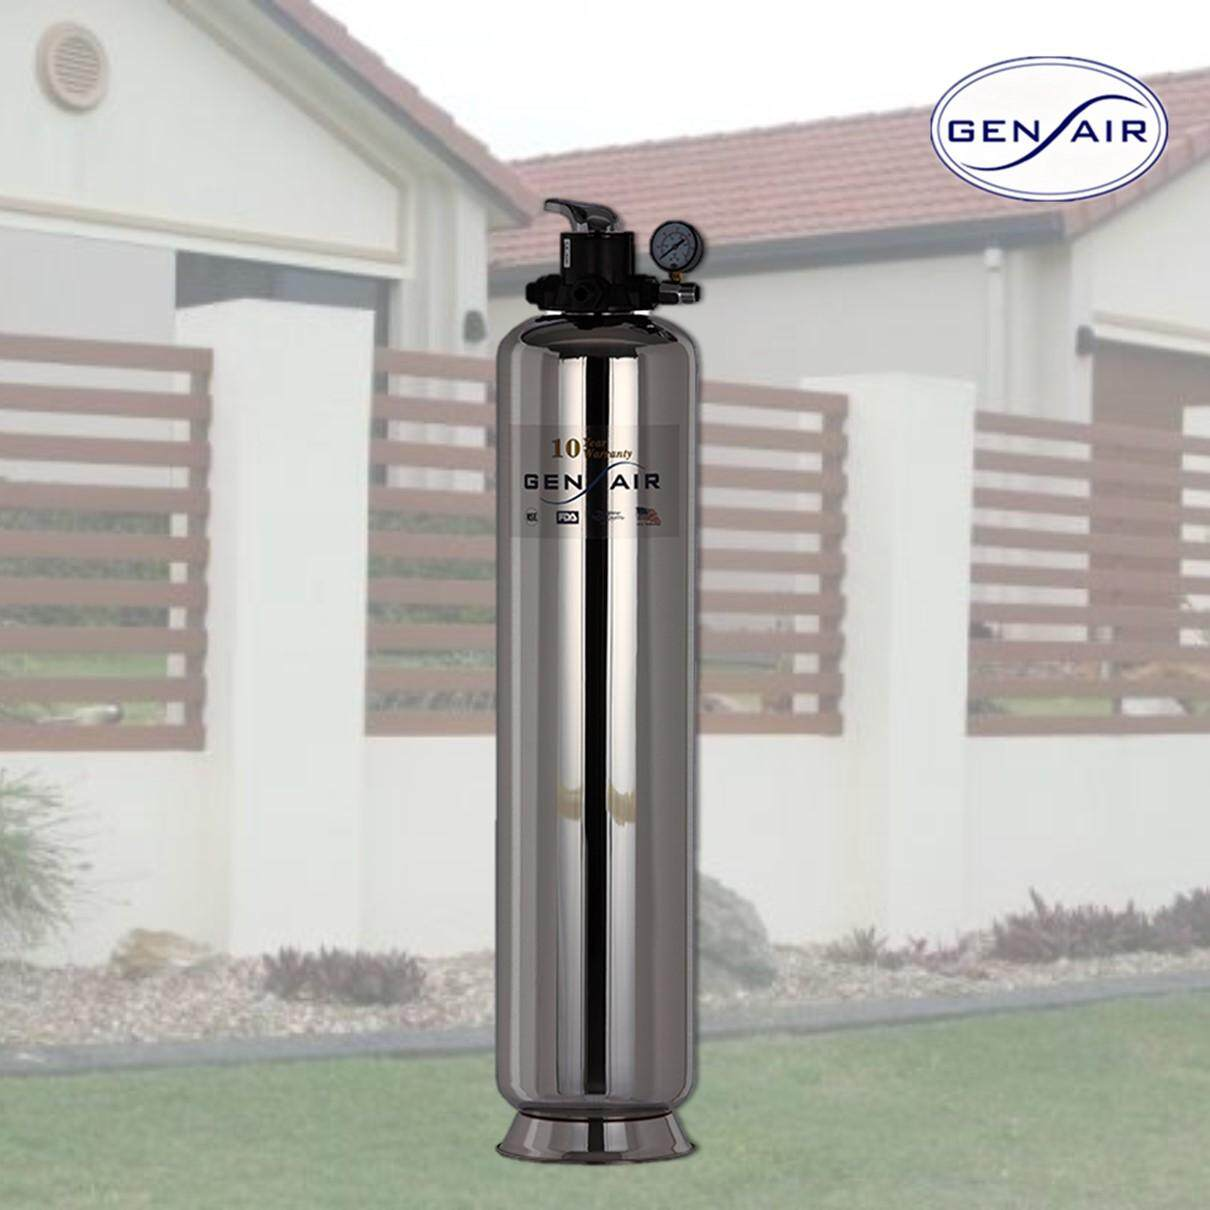 GEN AIR 1044 Outdoor Sand Filter